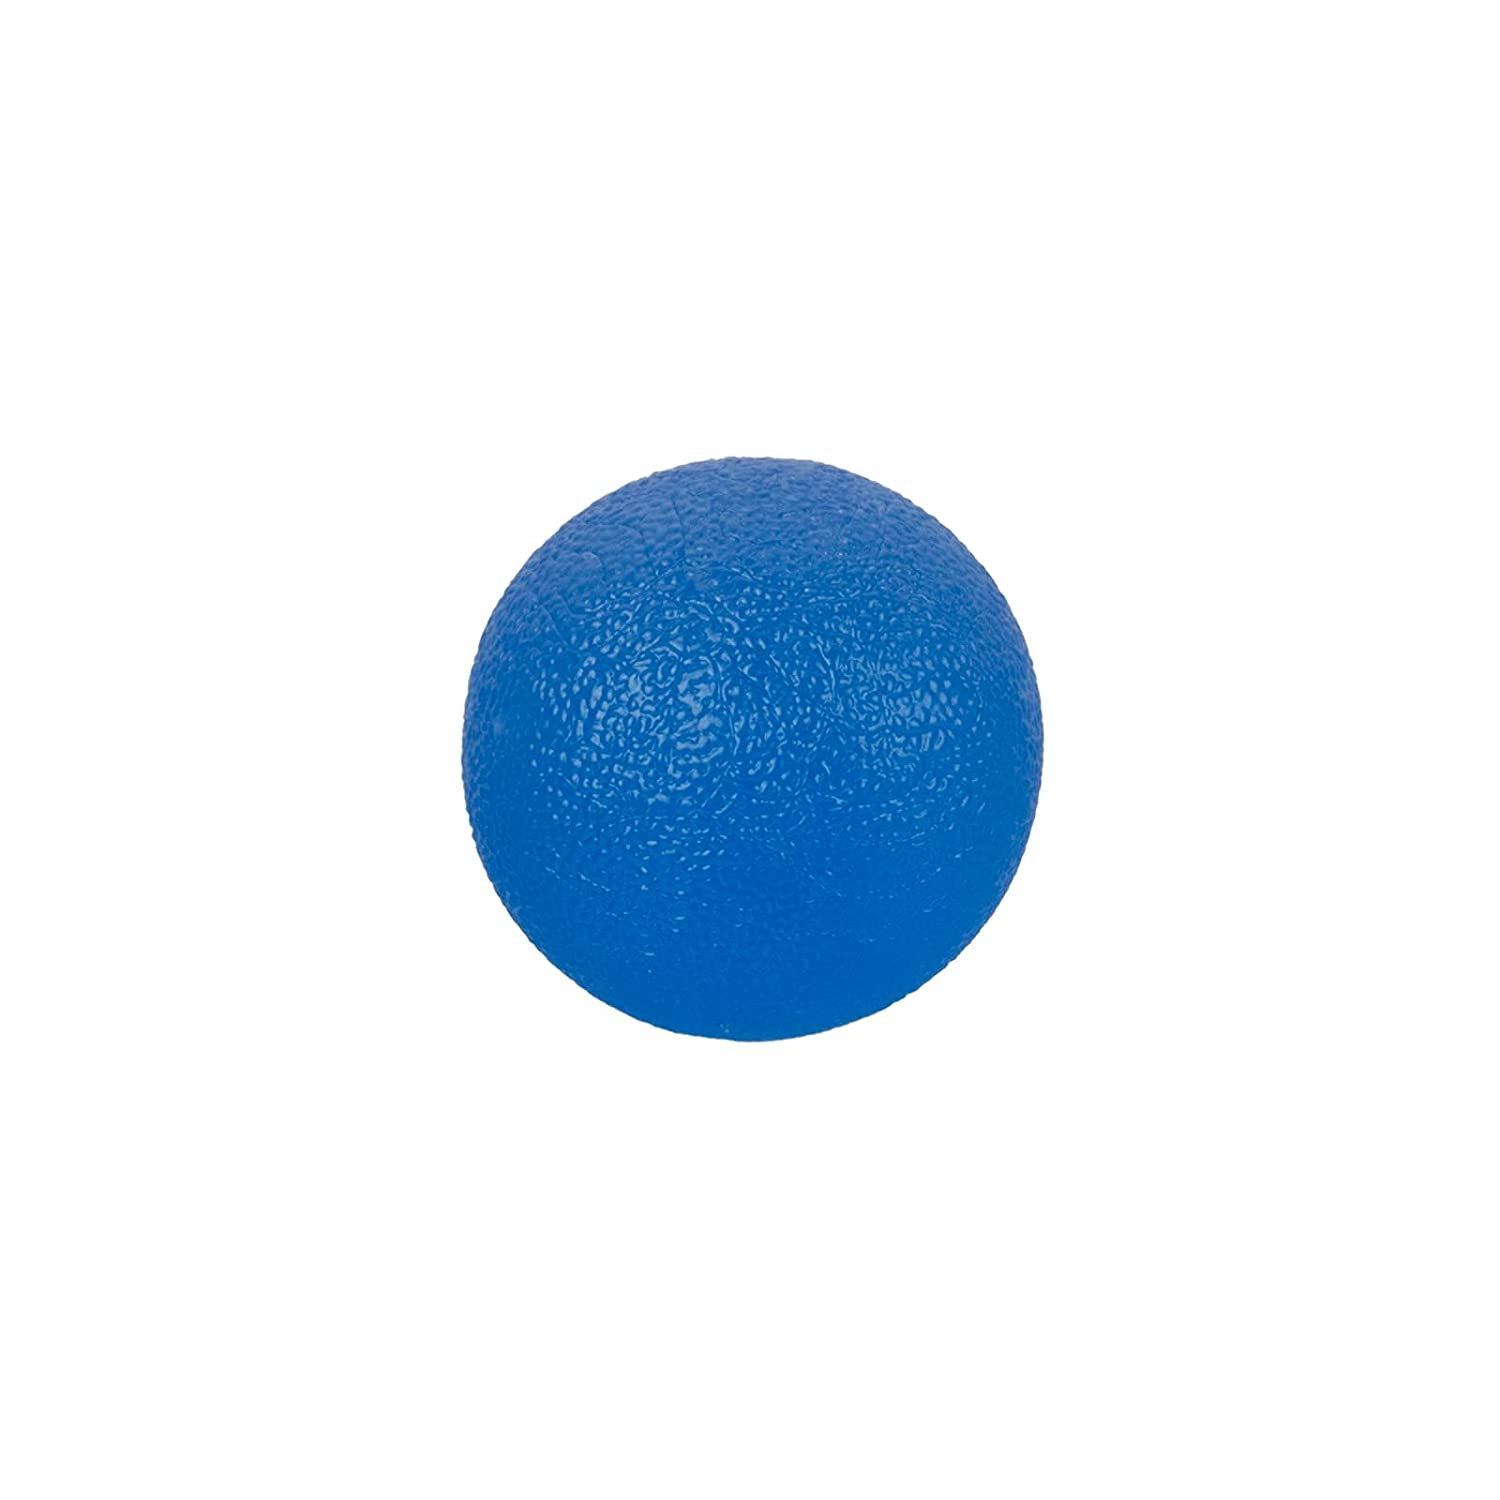 Sammons Preston-55372 Hand Therapy Fing We OFFer at cheap prices Firm Orange Alternative dealer Ball